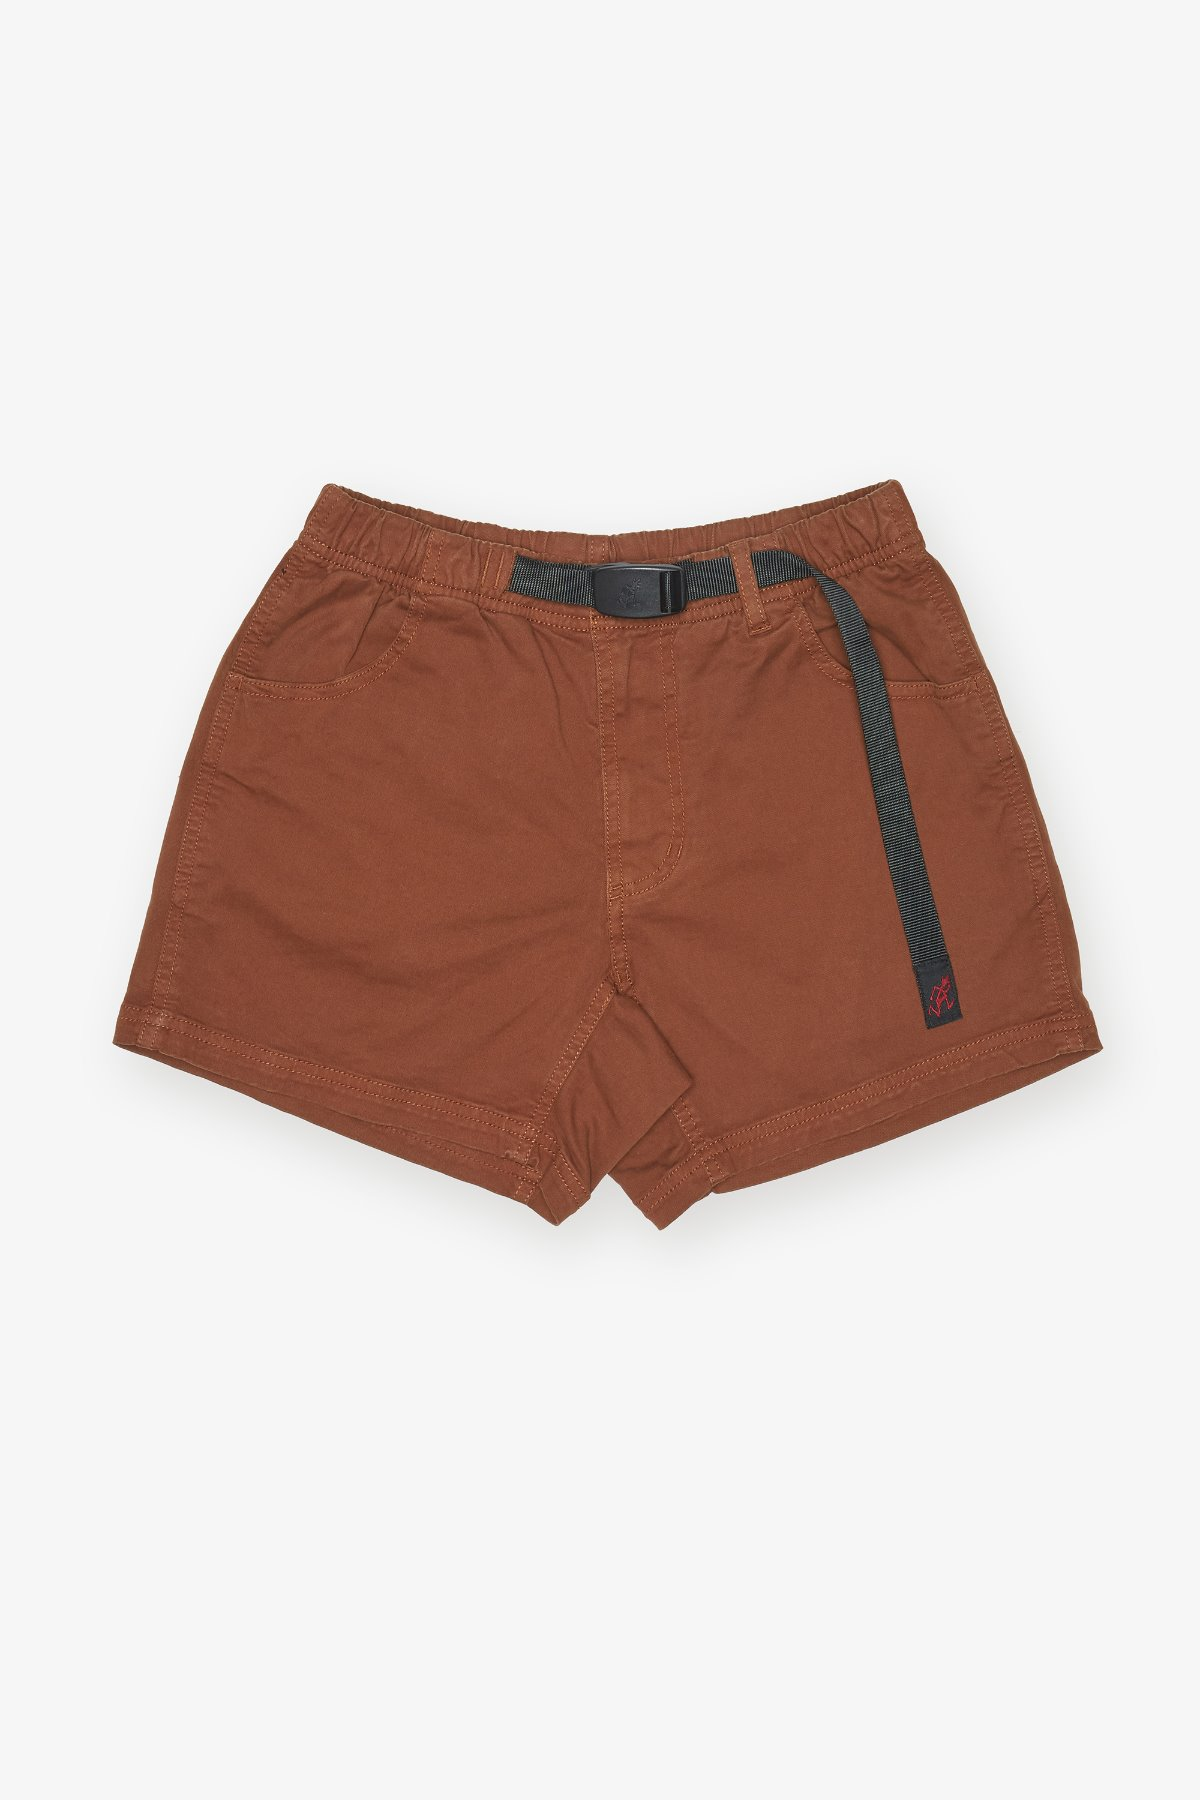 VERY SHORTS BROWN